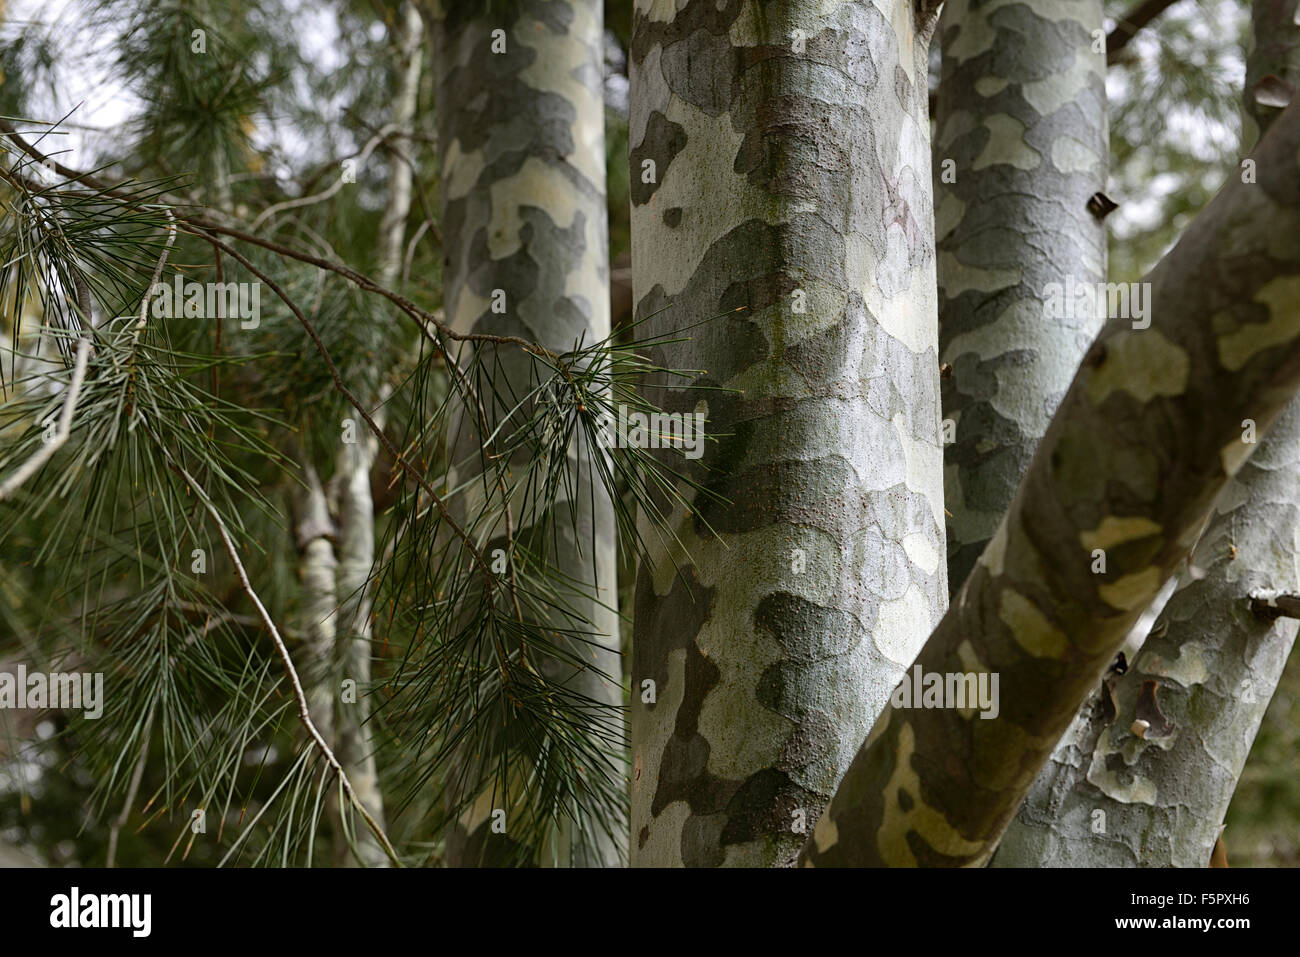 pinus bungeana Lacebark Pine mottled ornamental feature exfoliating bark attractive tree trunk trees RM Floral - Stock Image